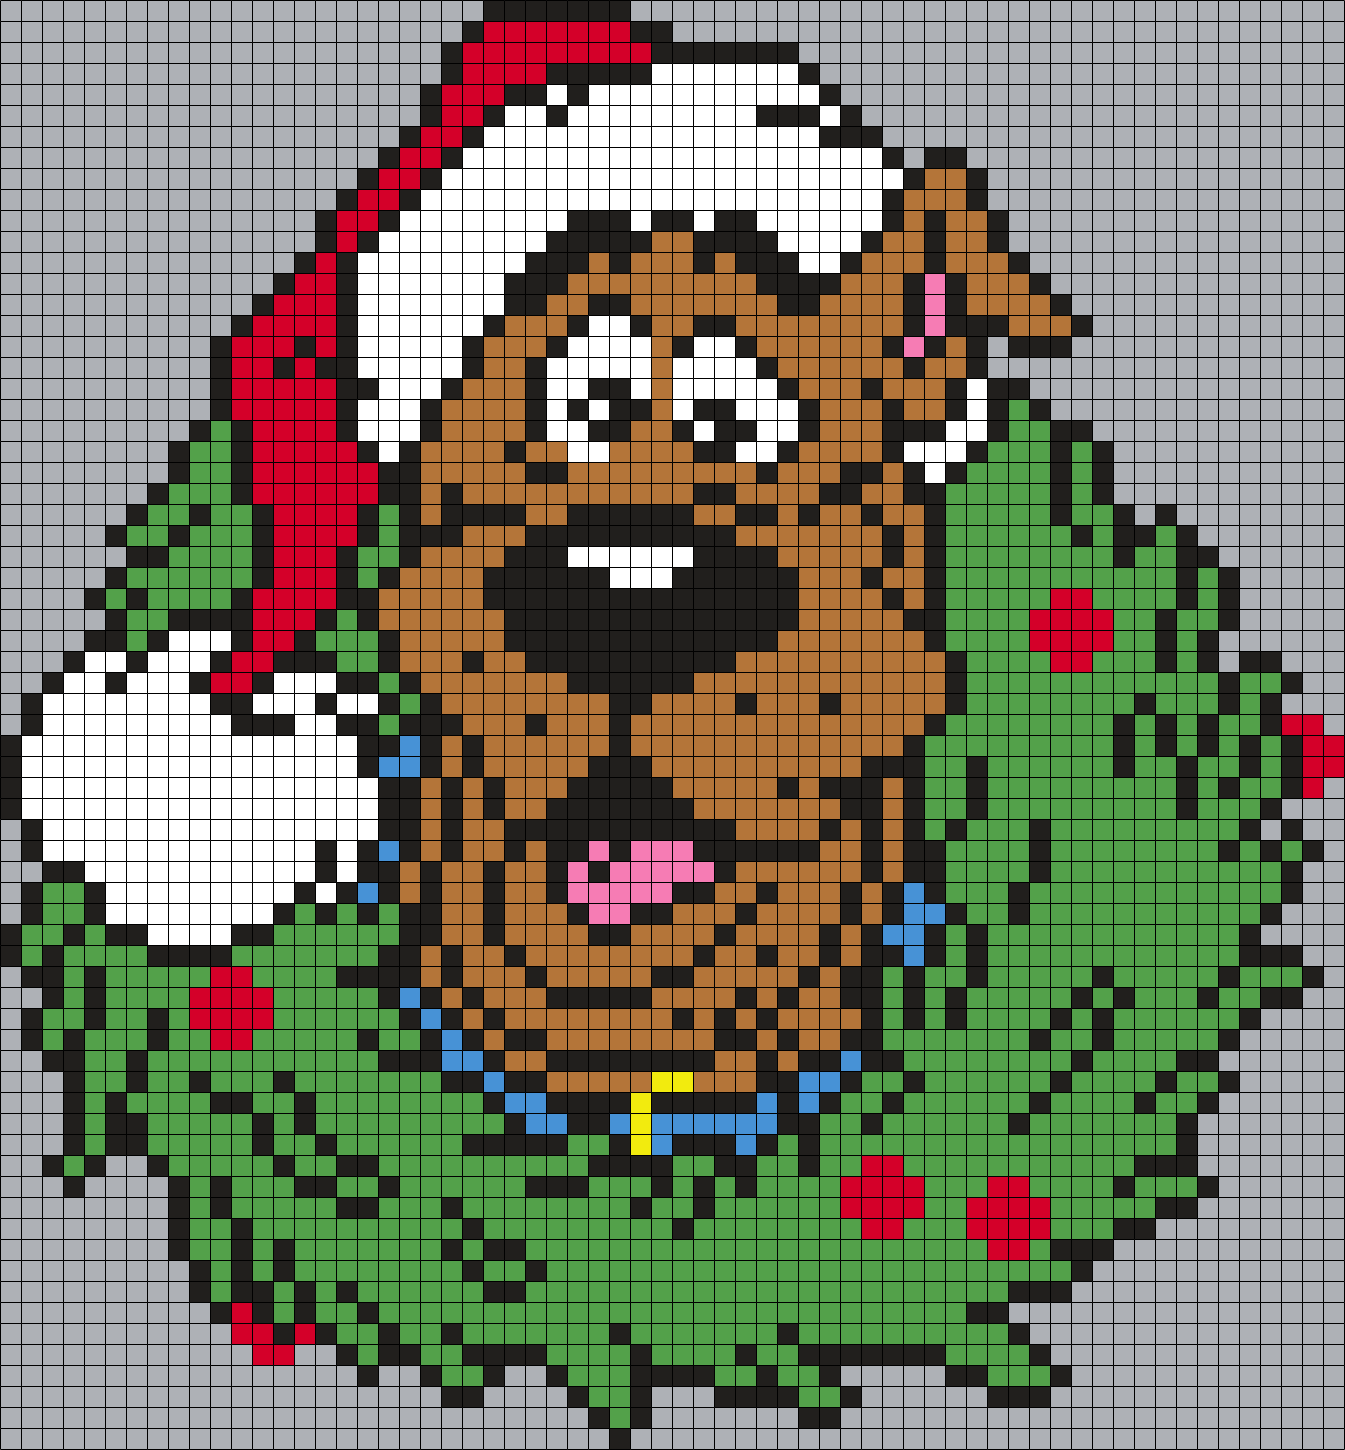 Scooby-Doo Christmas Wreath (Square Grid) by Maninthebook on Kandi ...